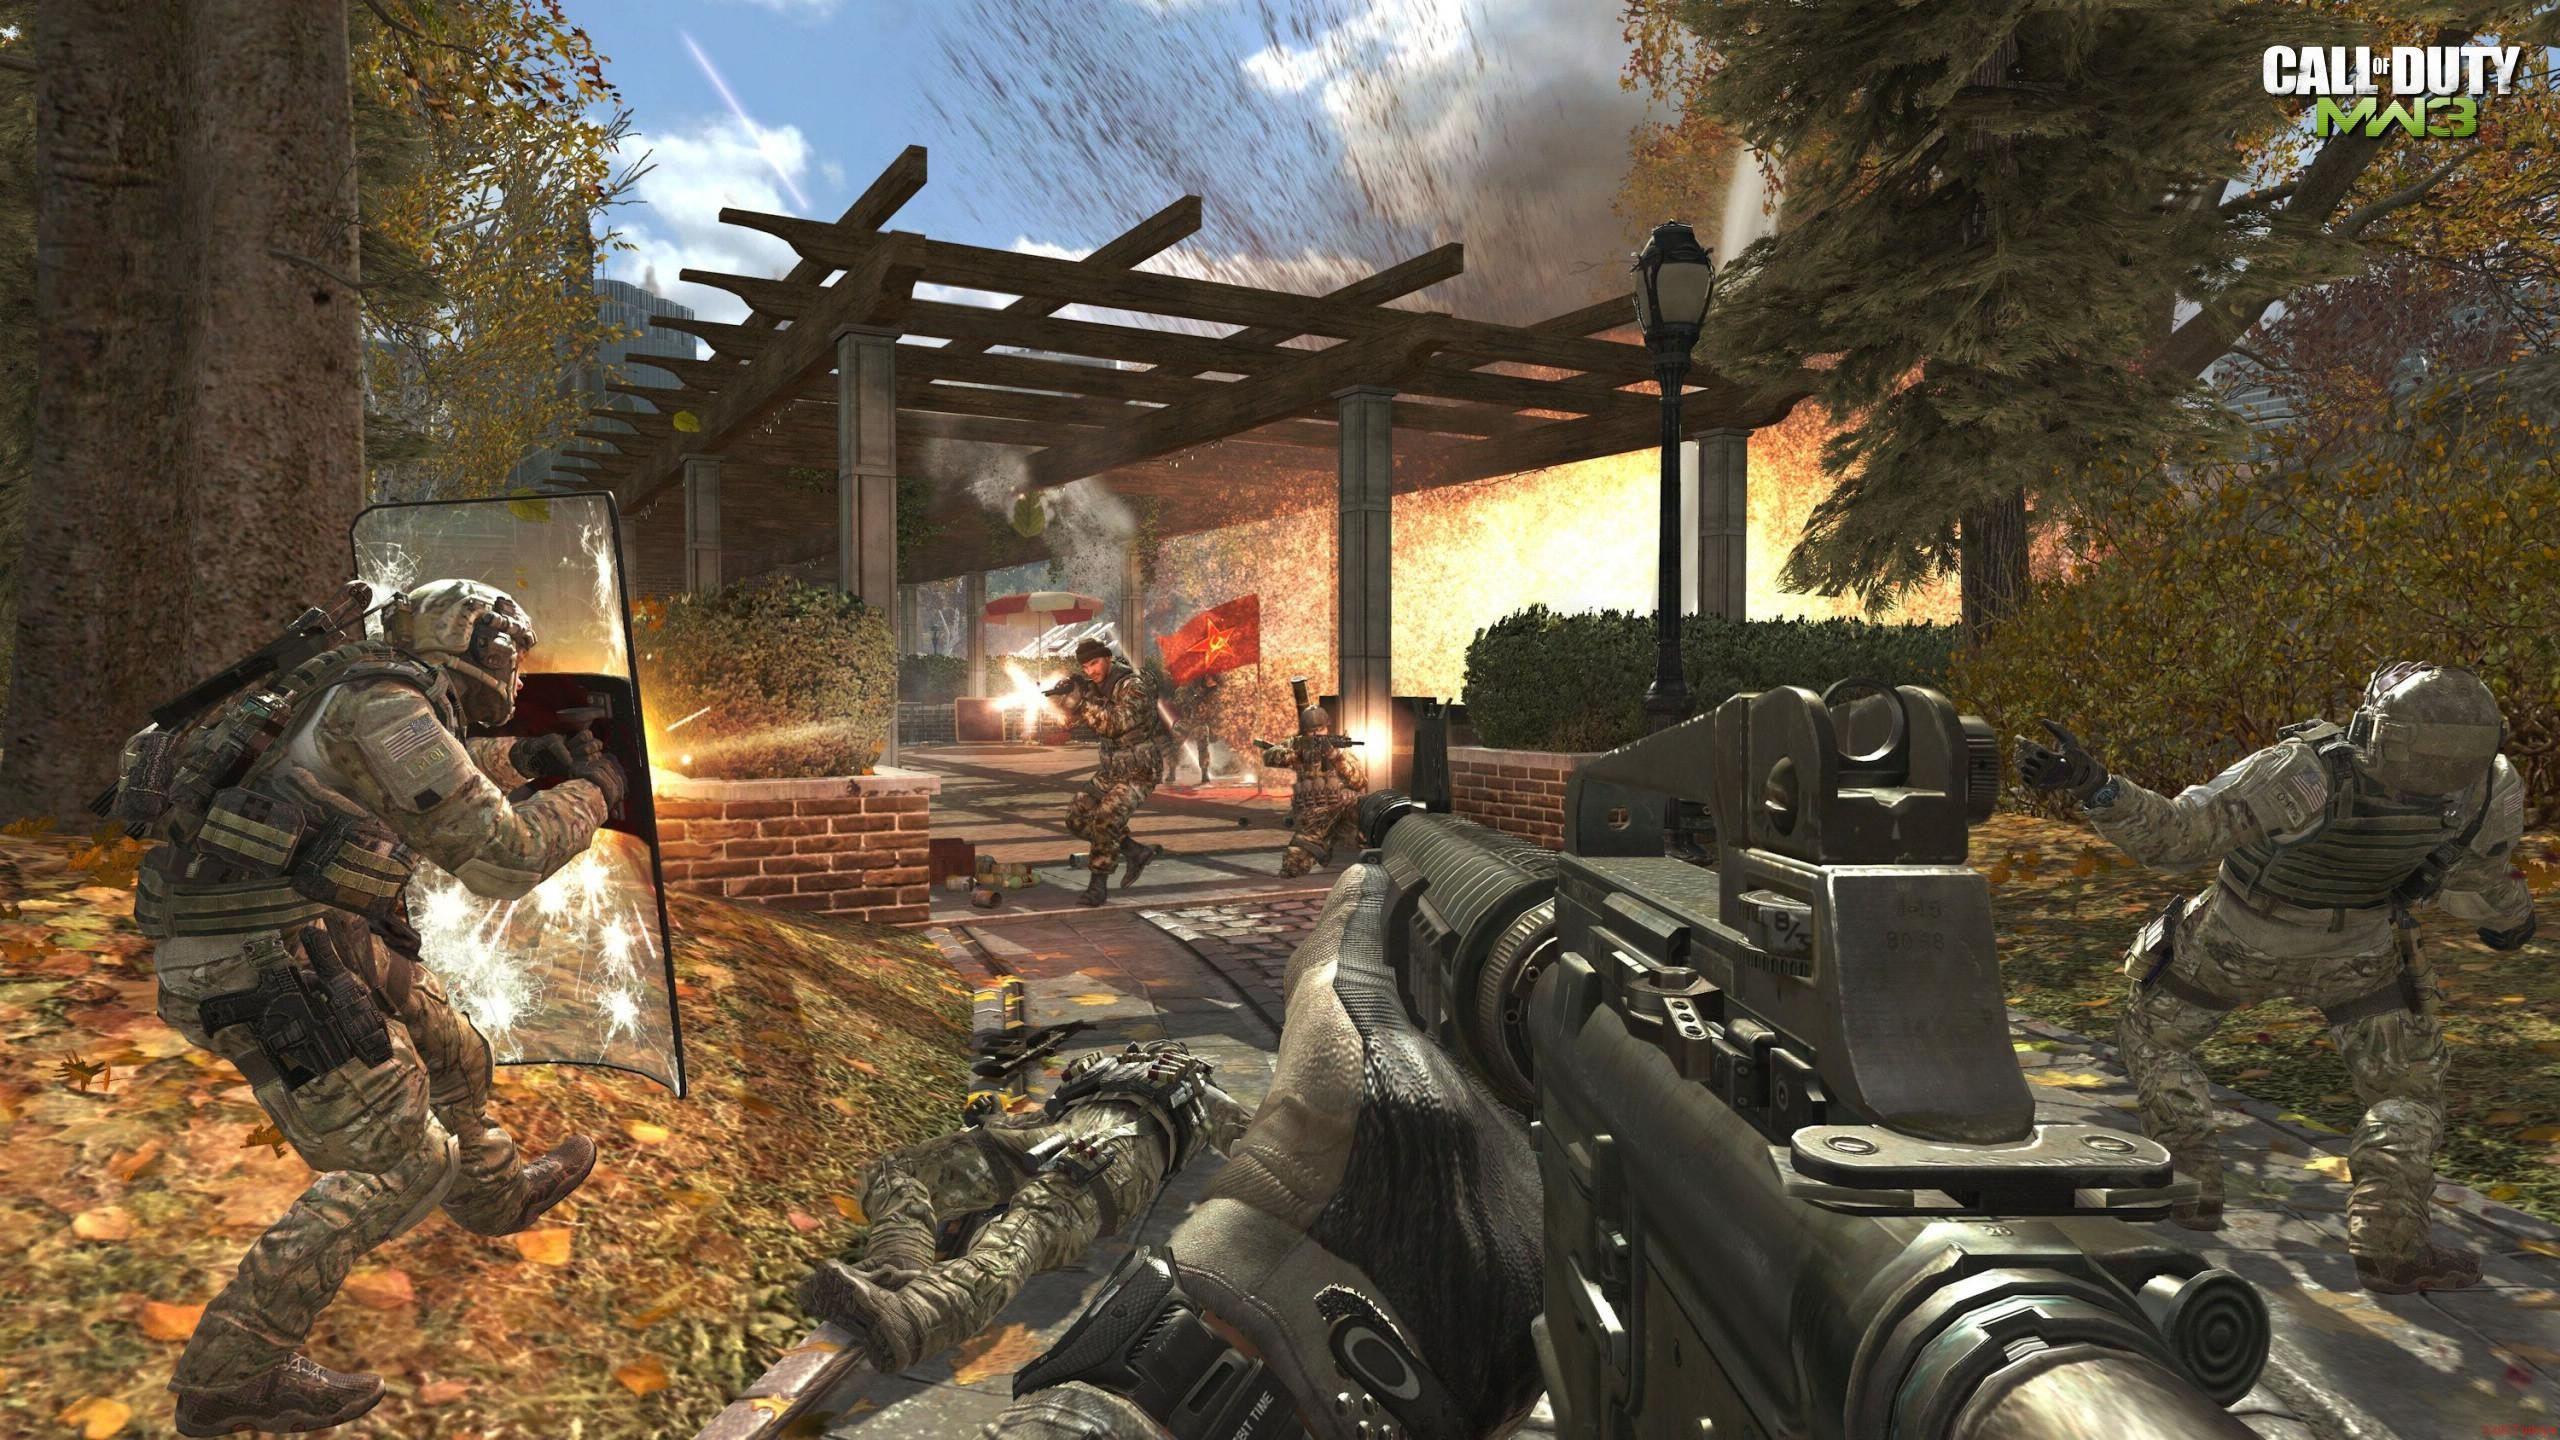 Call of Duty: Black Ops on the Mac App Store - iTunes